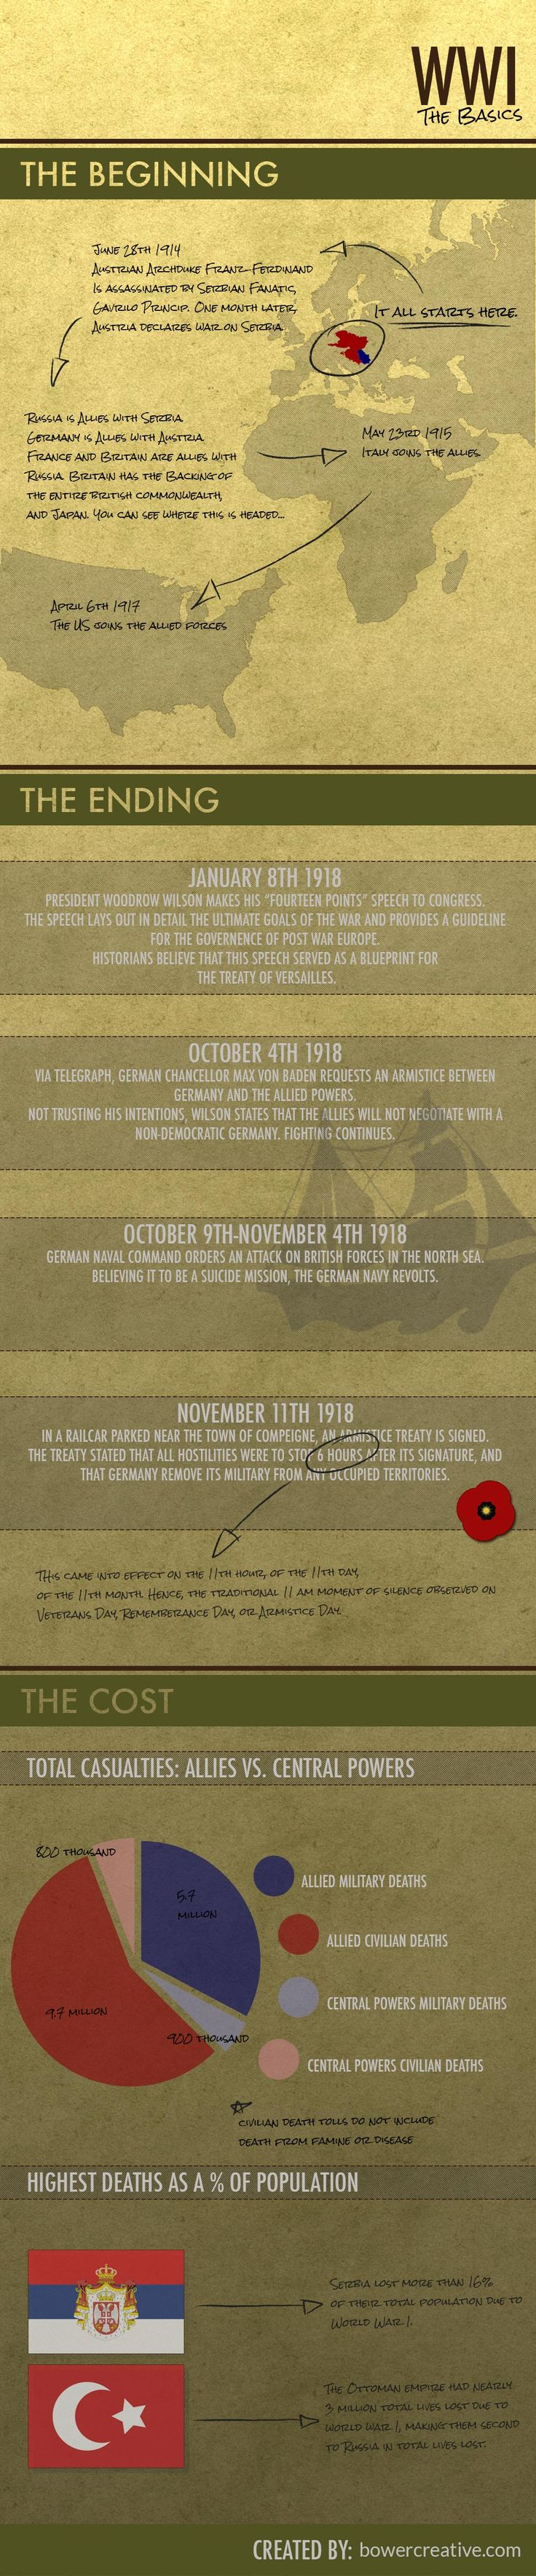 A very quick briefing on the events of World War 1. Basic chronology and a casualty report are included. It is remembrance day today after all...